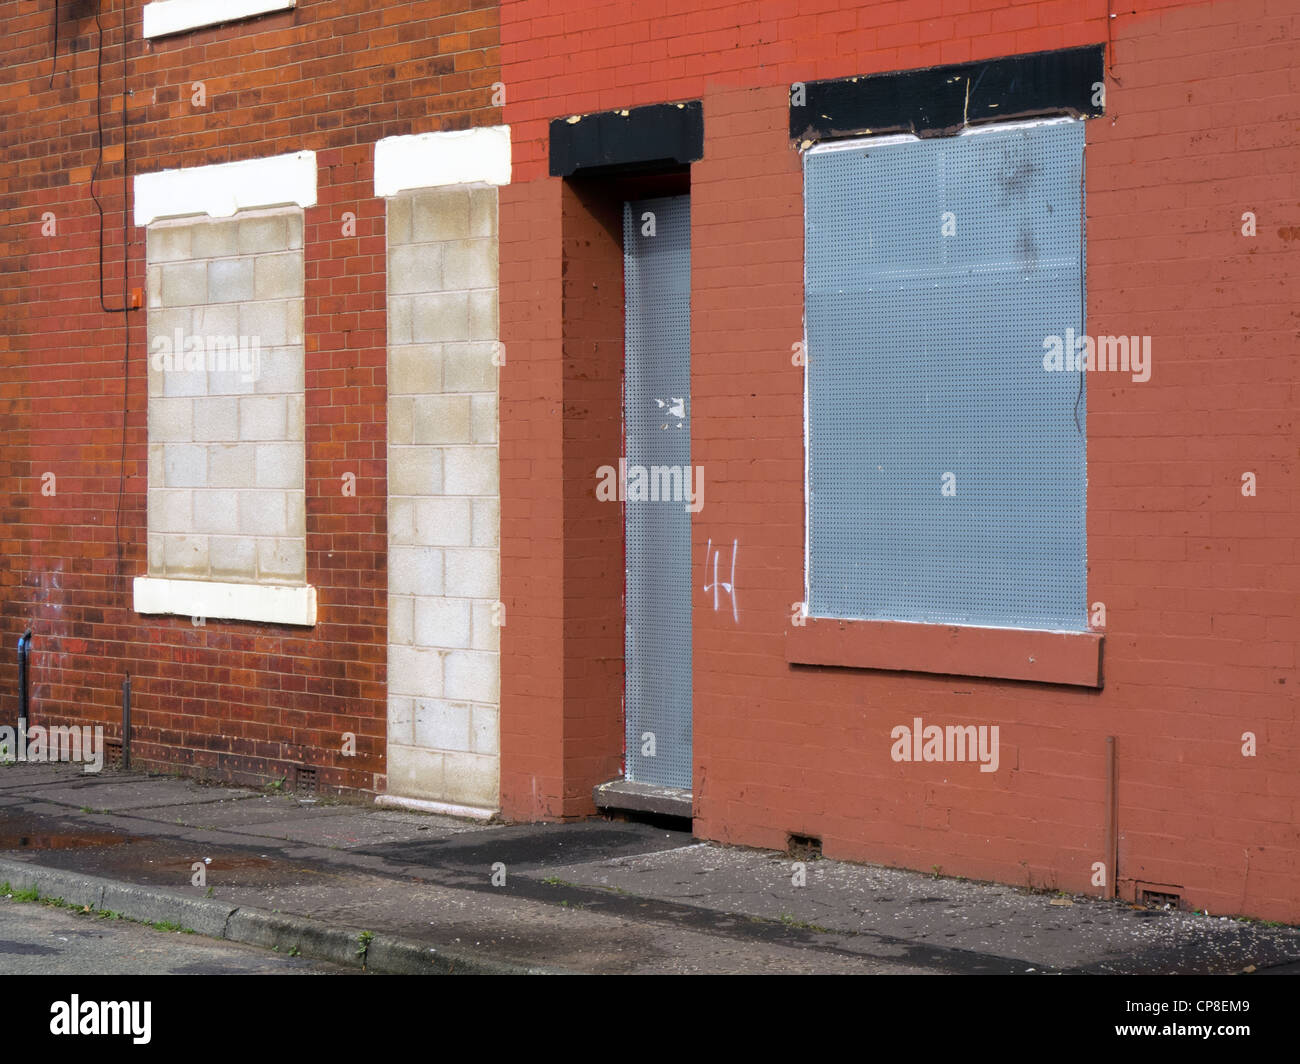 England, Salford, Lower Broughton, early 19th century housing ready for demolition - Stock Image